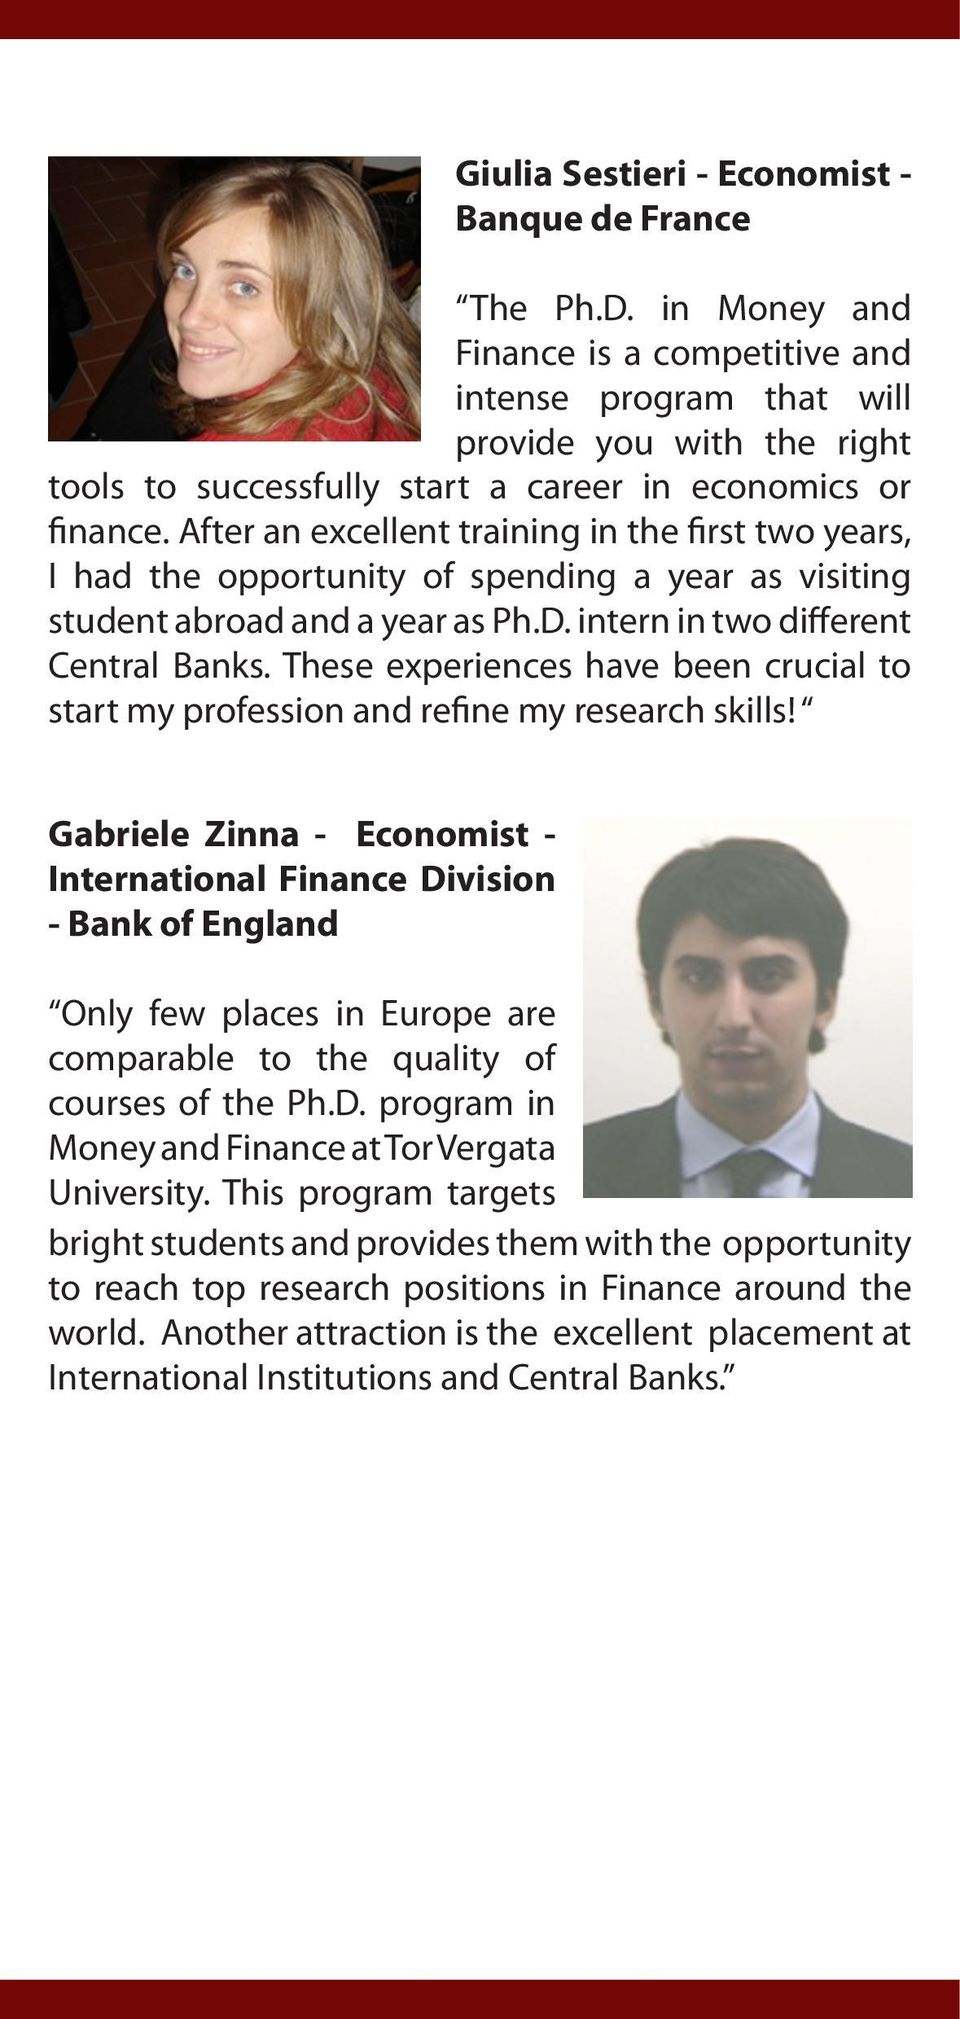 After an excellent training in the first two years, I had the opportunity of spending a year as visiting student abroad and a year as Ph.D. intern in two different Central Banks.